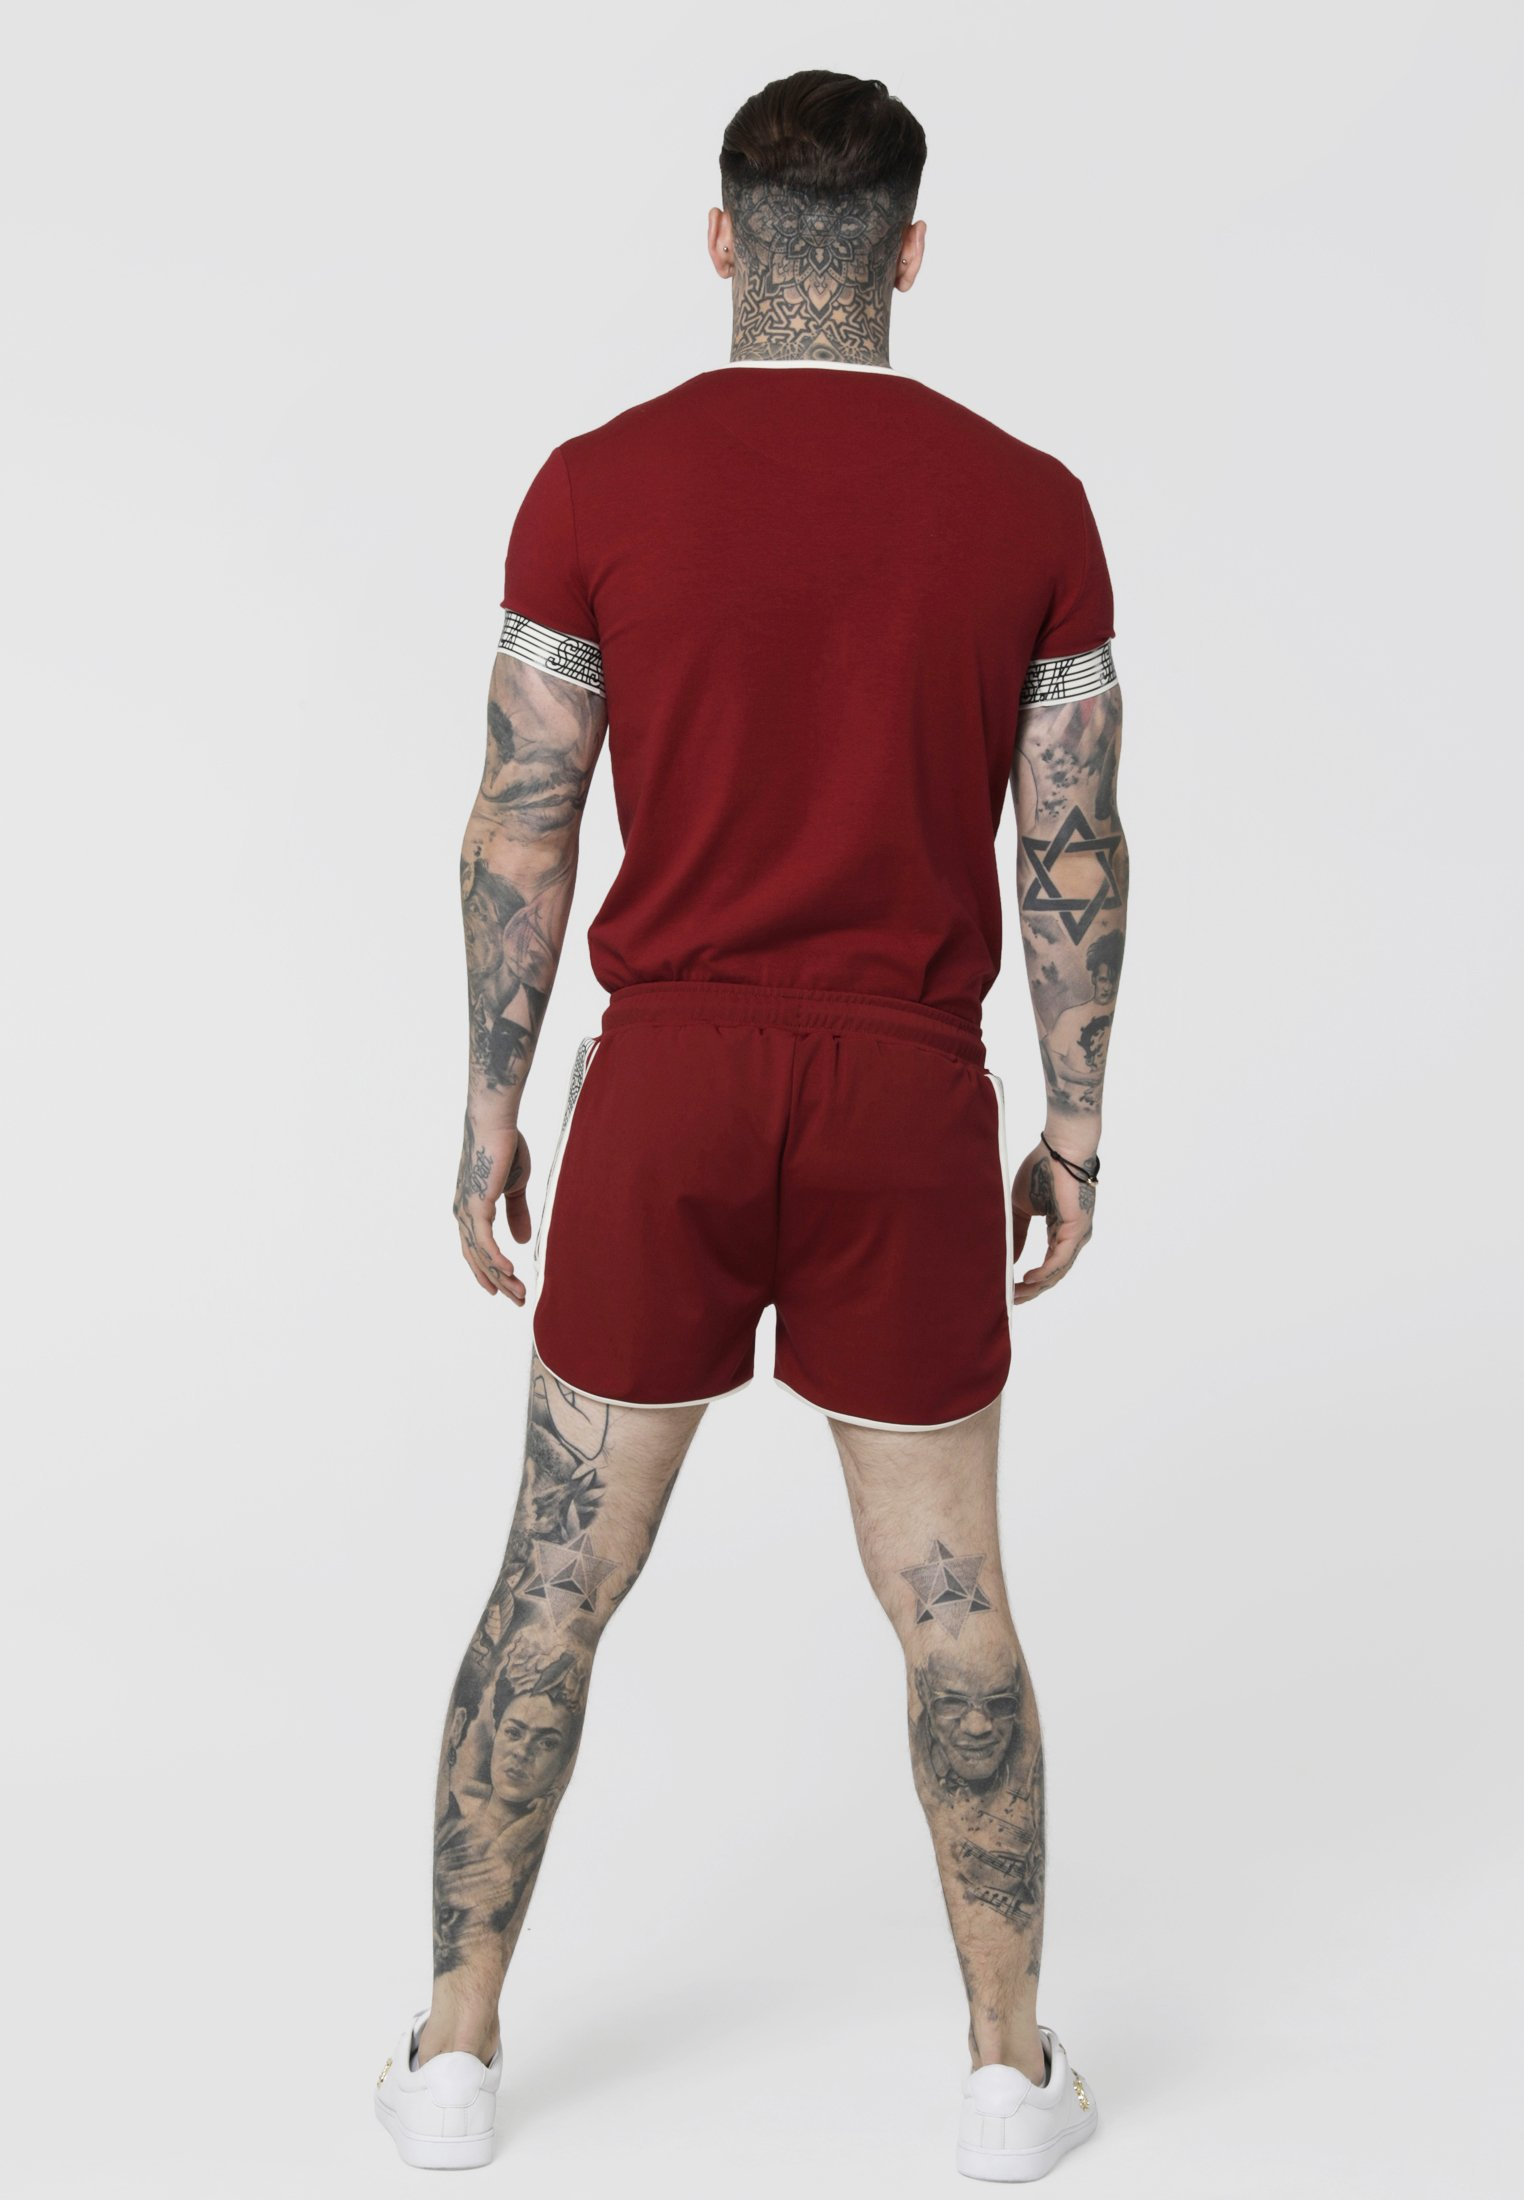 Red Cuff Gym shirt Runner TeeT Siksilk Imprimé tdQCrxsh